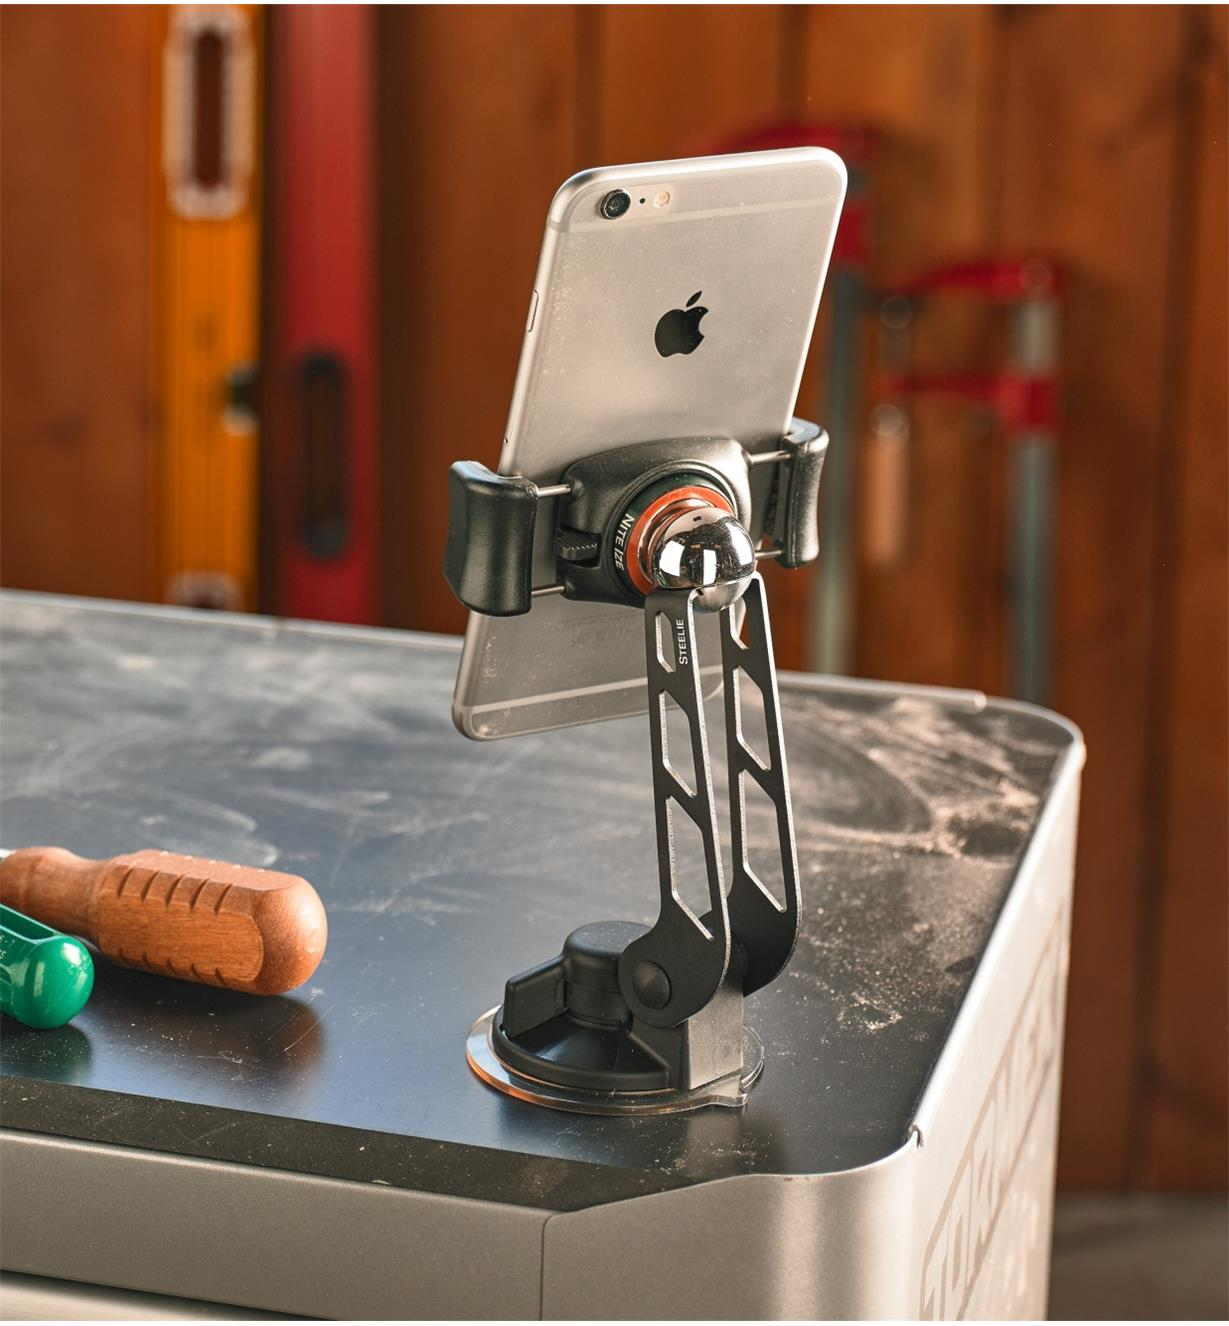 A phone mounted to a work surface using the Steelie FreeMount Kit